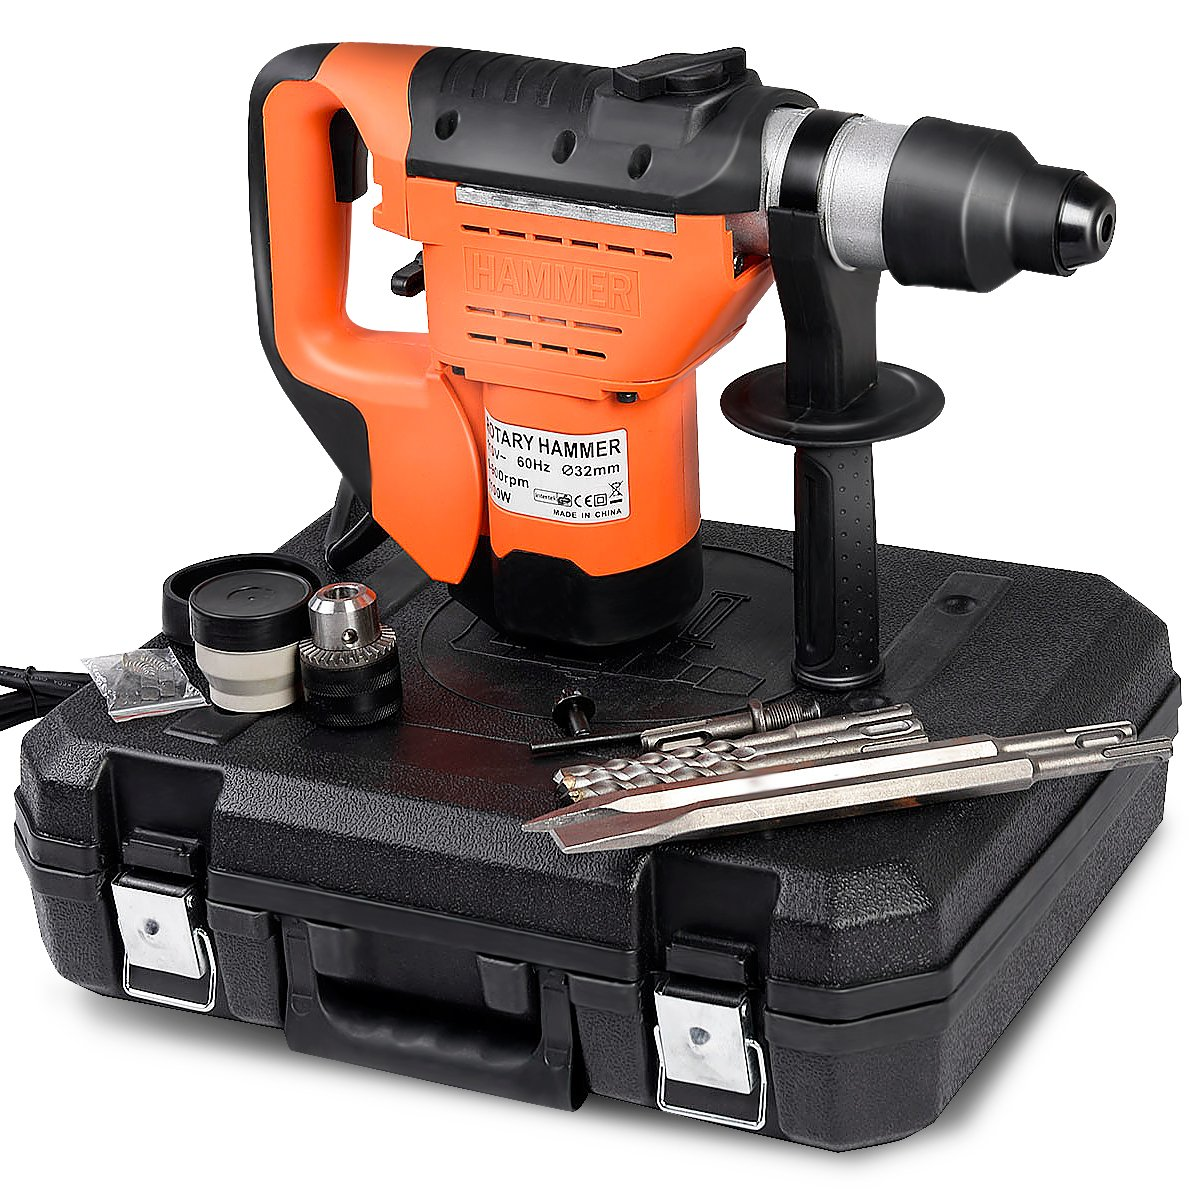 Goplus 1-1/2'' SDS Drill, 1100W Electric Rotary Hammer, Plus Demolition Bits, Variable Speed, Orange